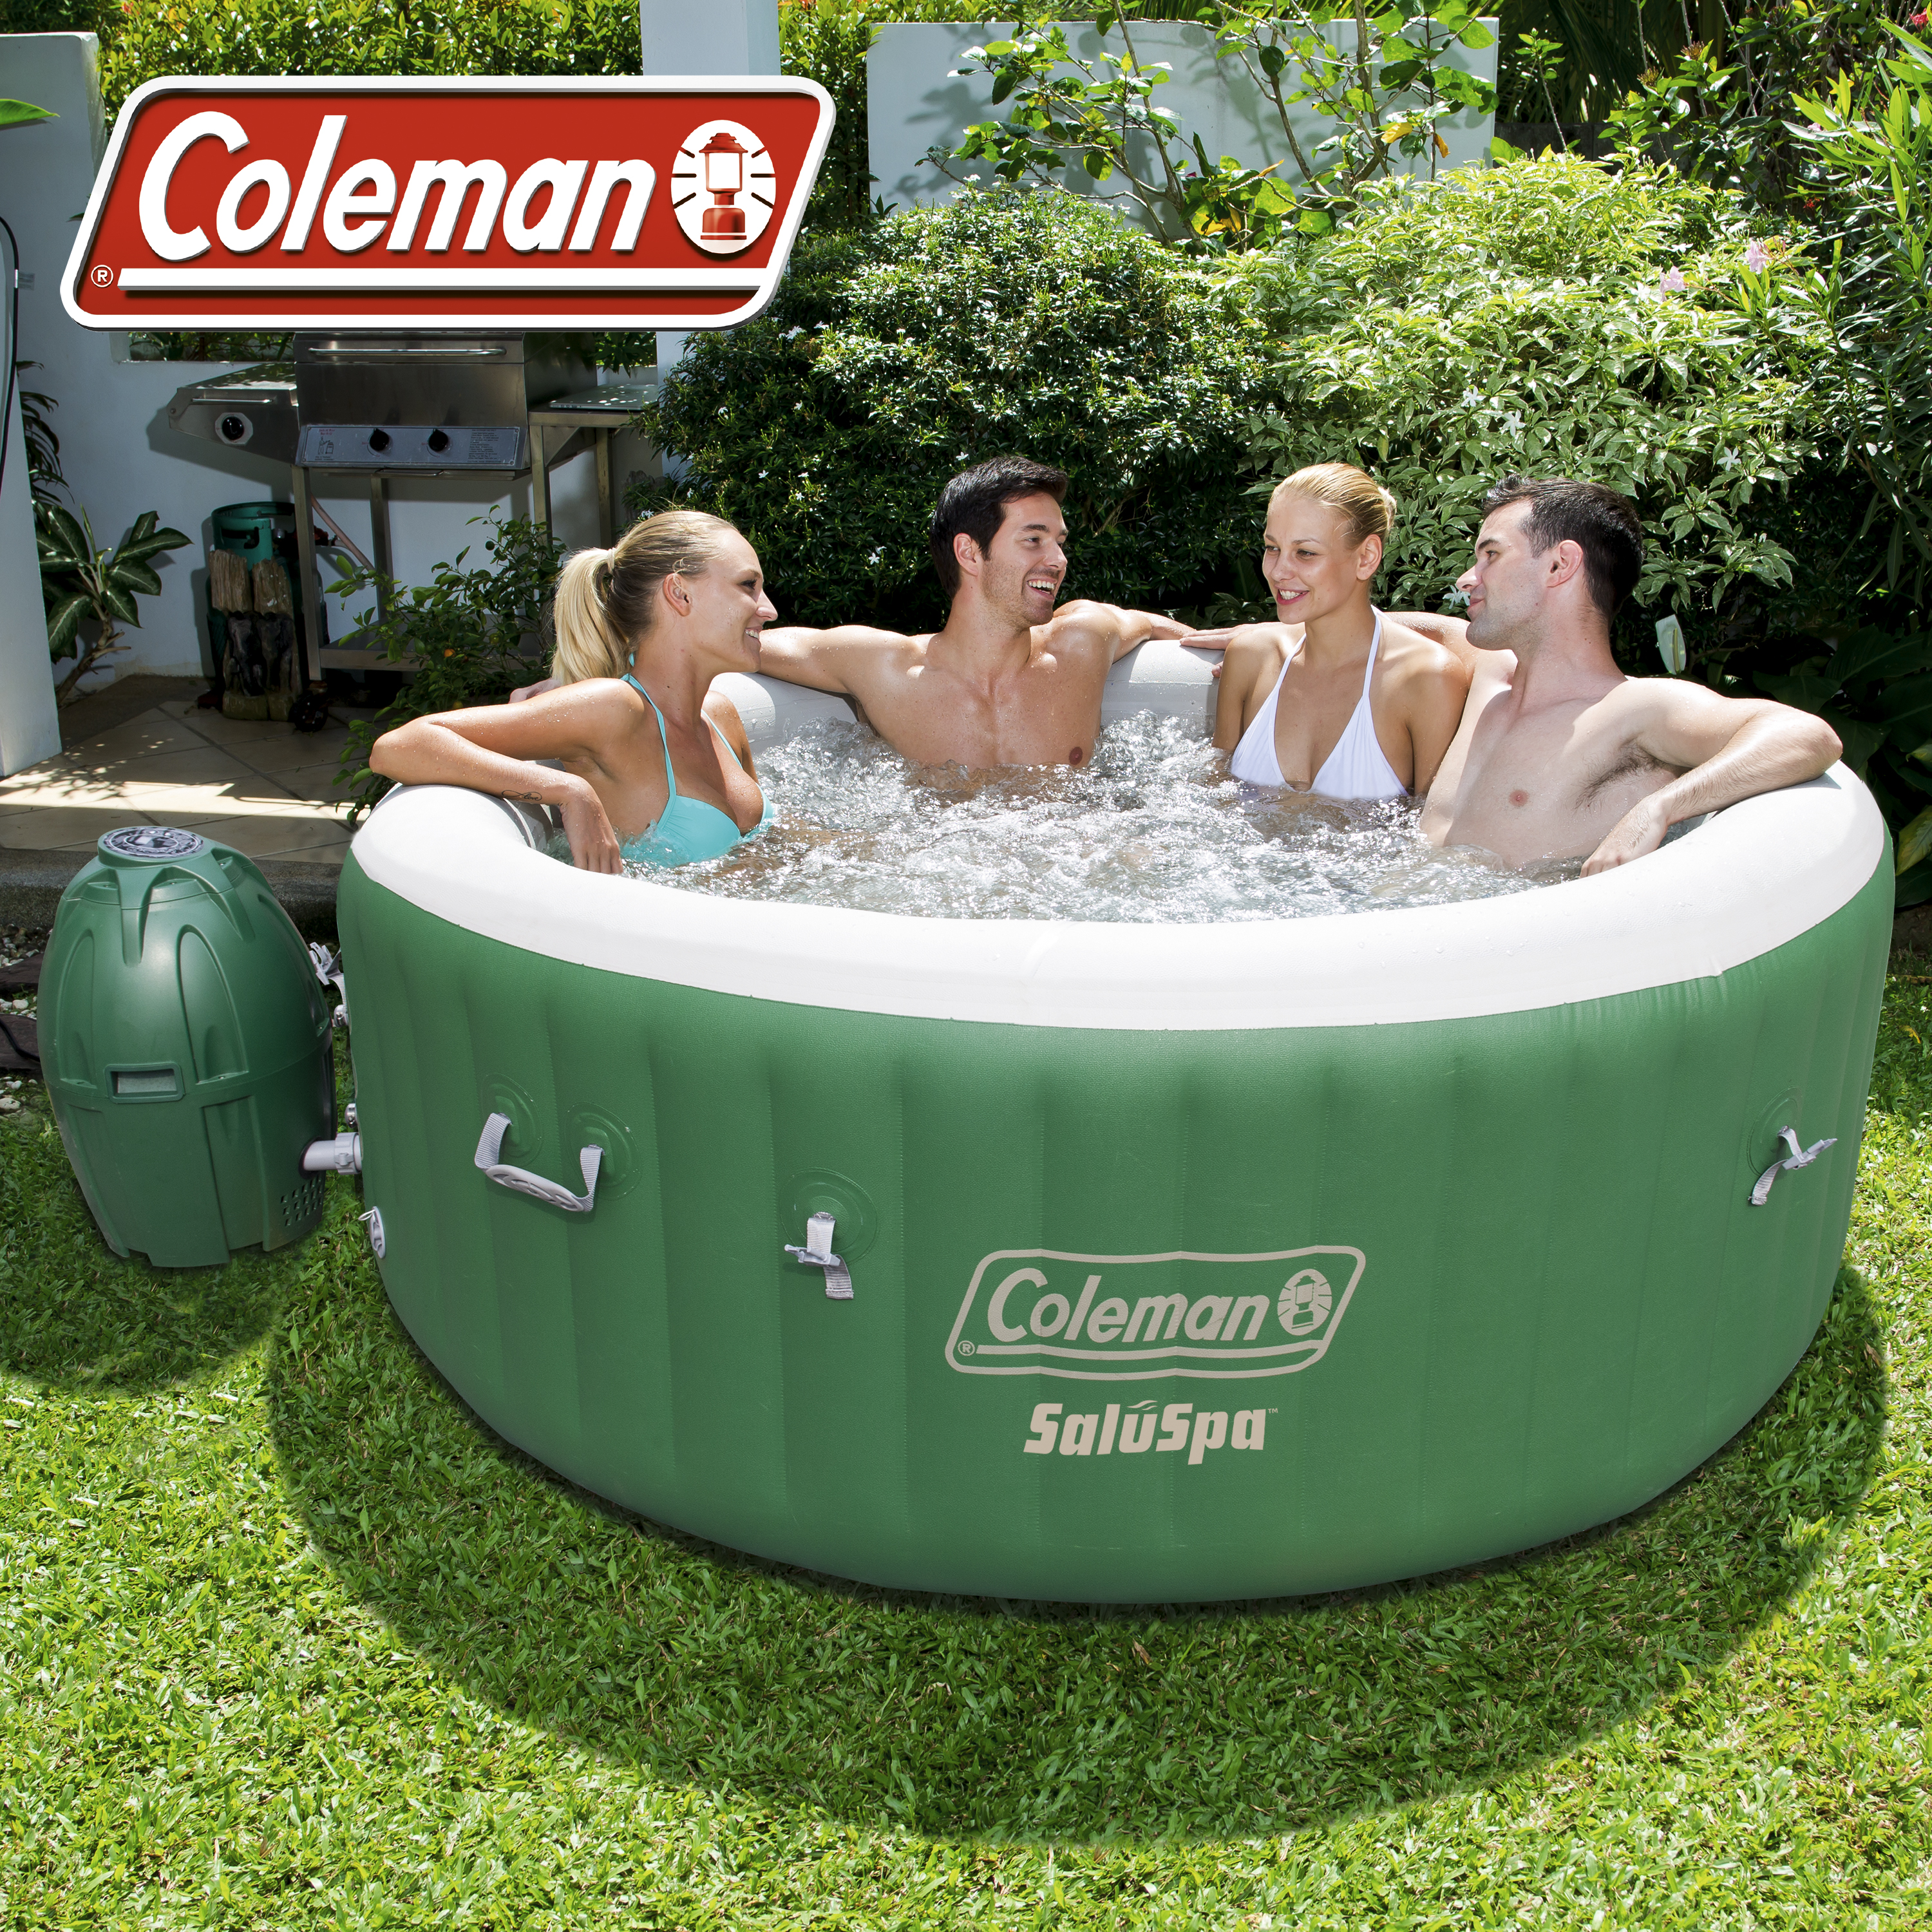 Coleman SaluSpa 4-6 Person Inflatable Portable Massage Hot Tub Spa